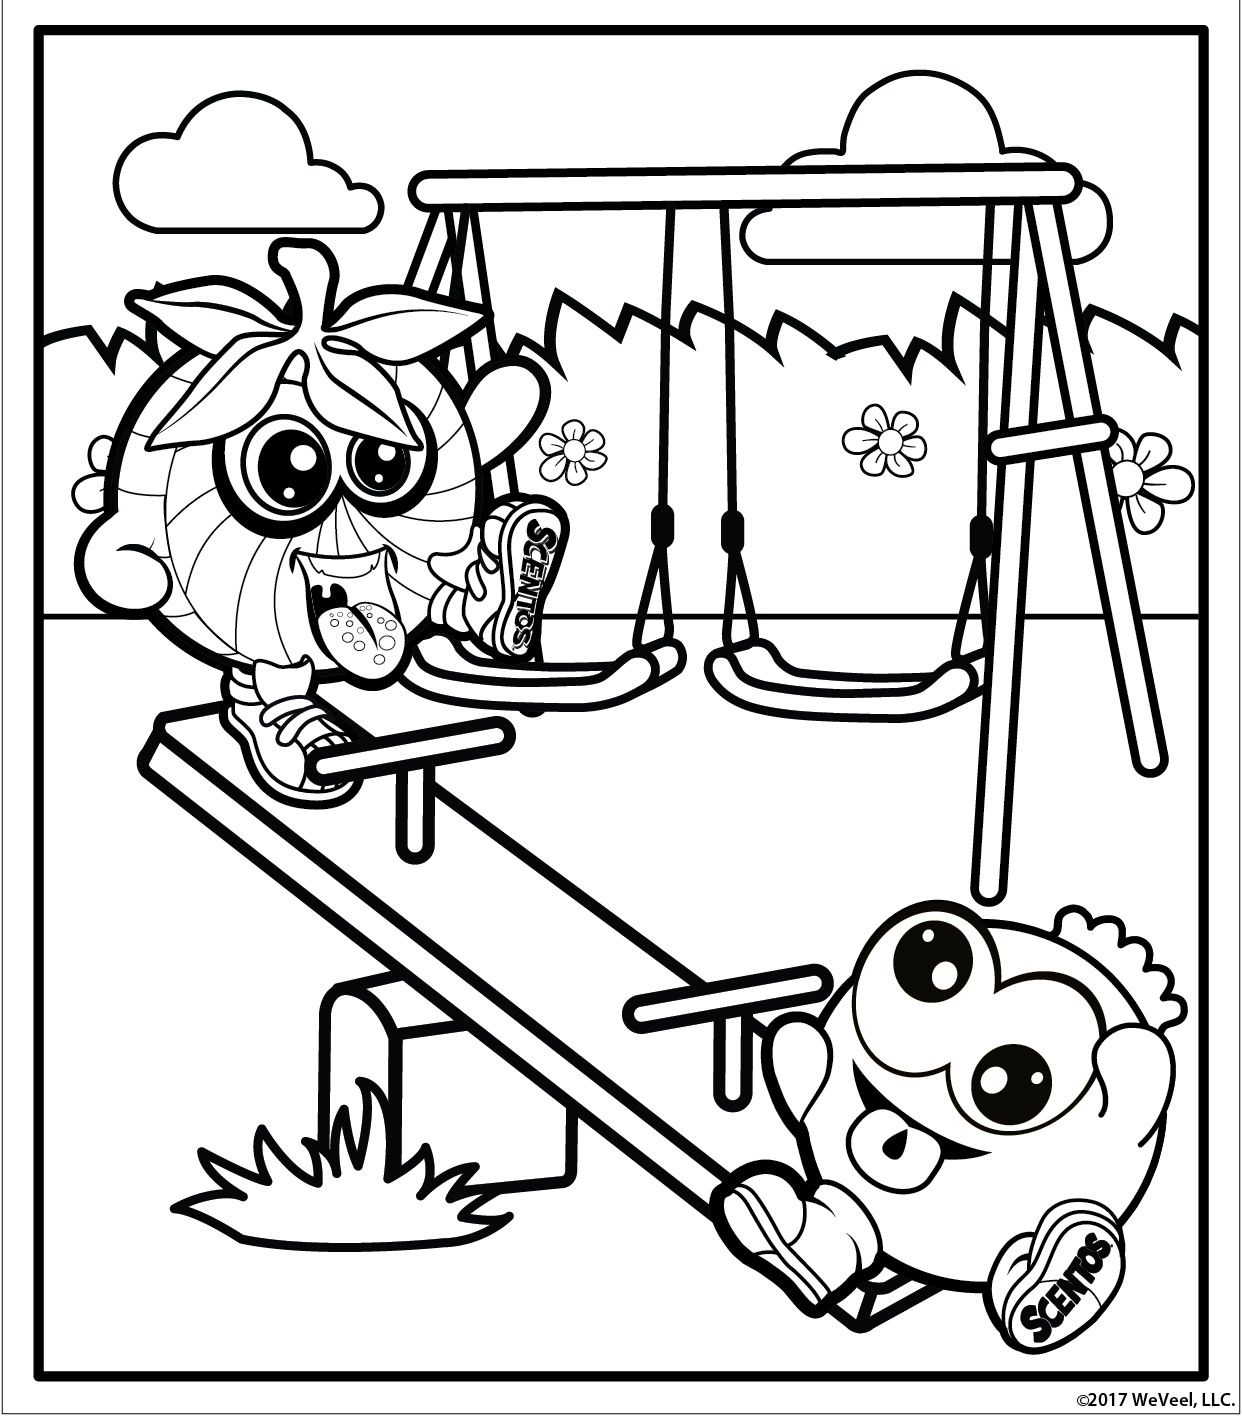 Coloring Pages Characters In 2020 Coloring Pages Monster Coloring Pages Printable Coloring Pages